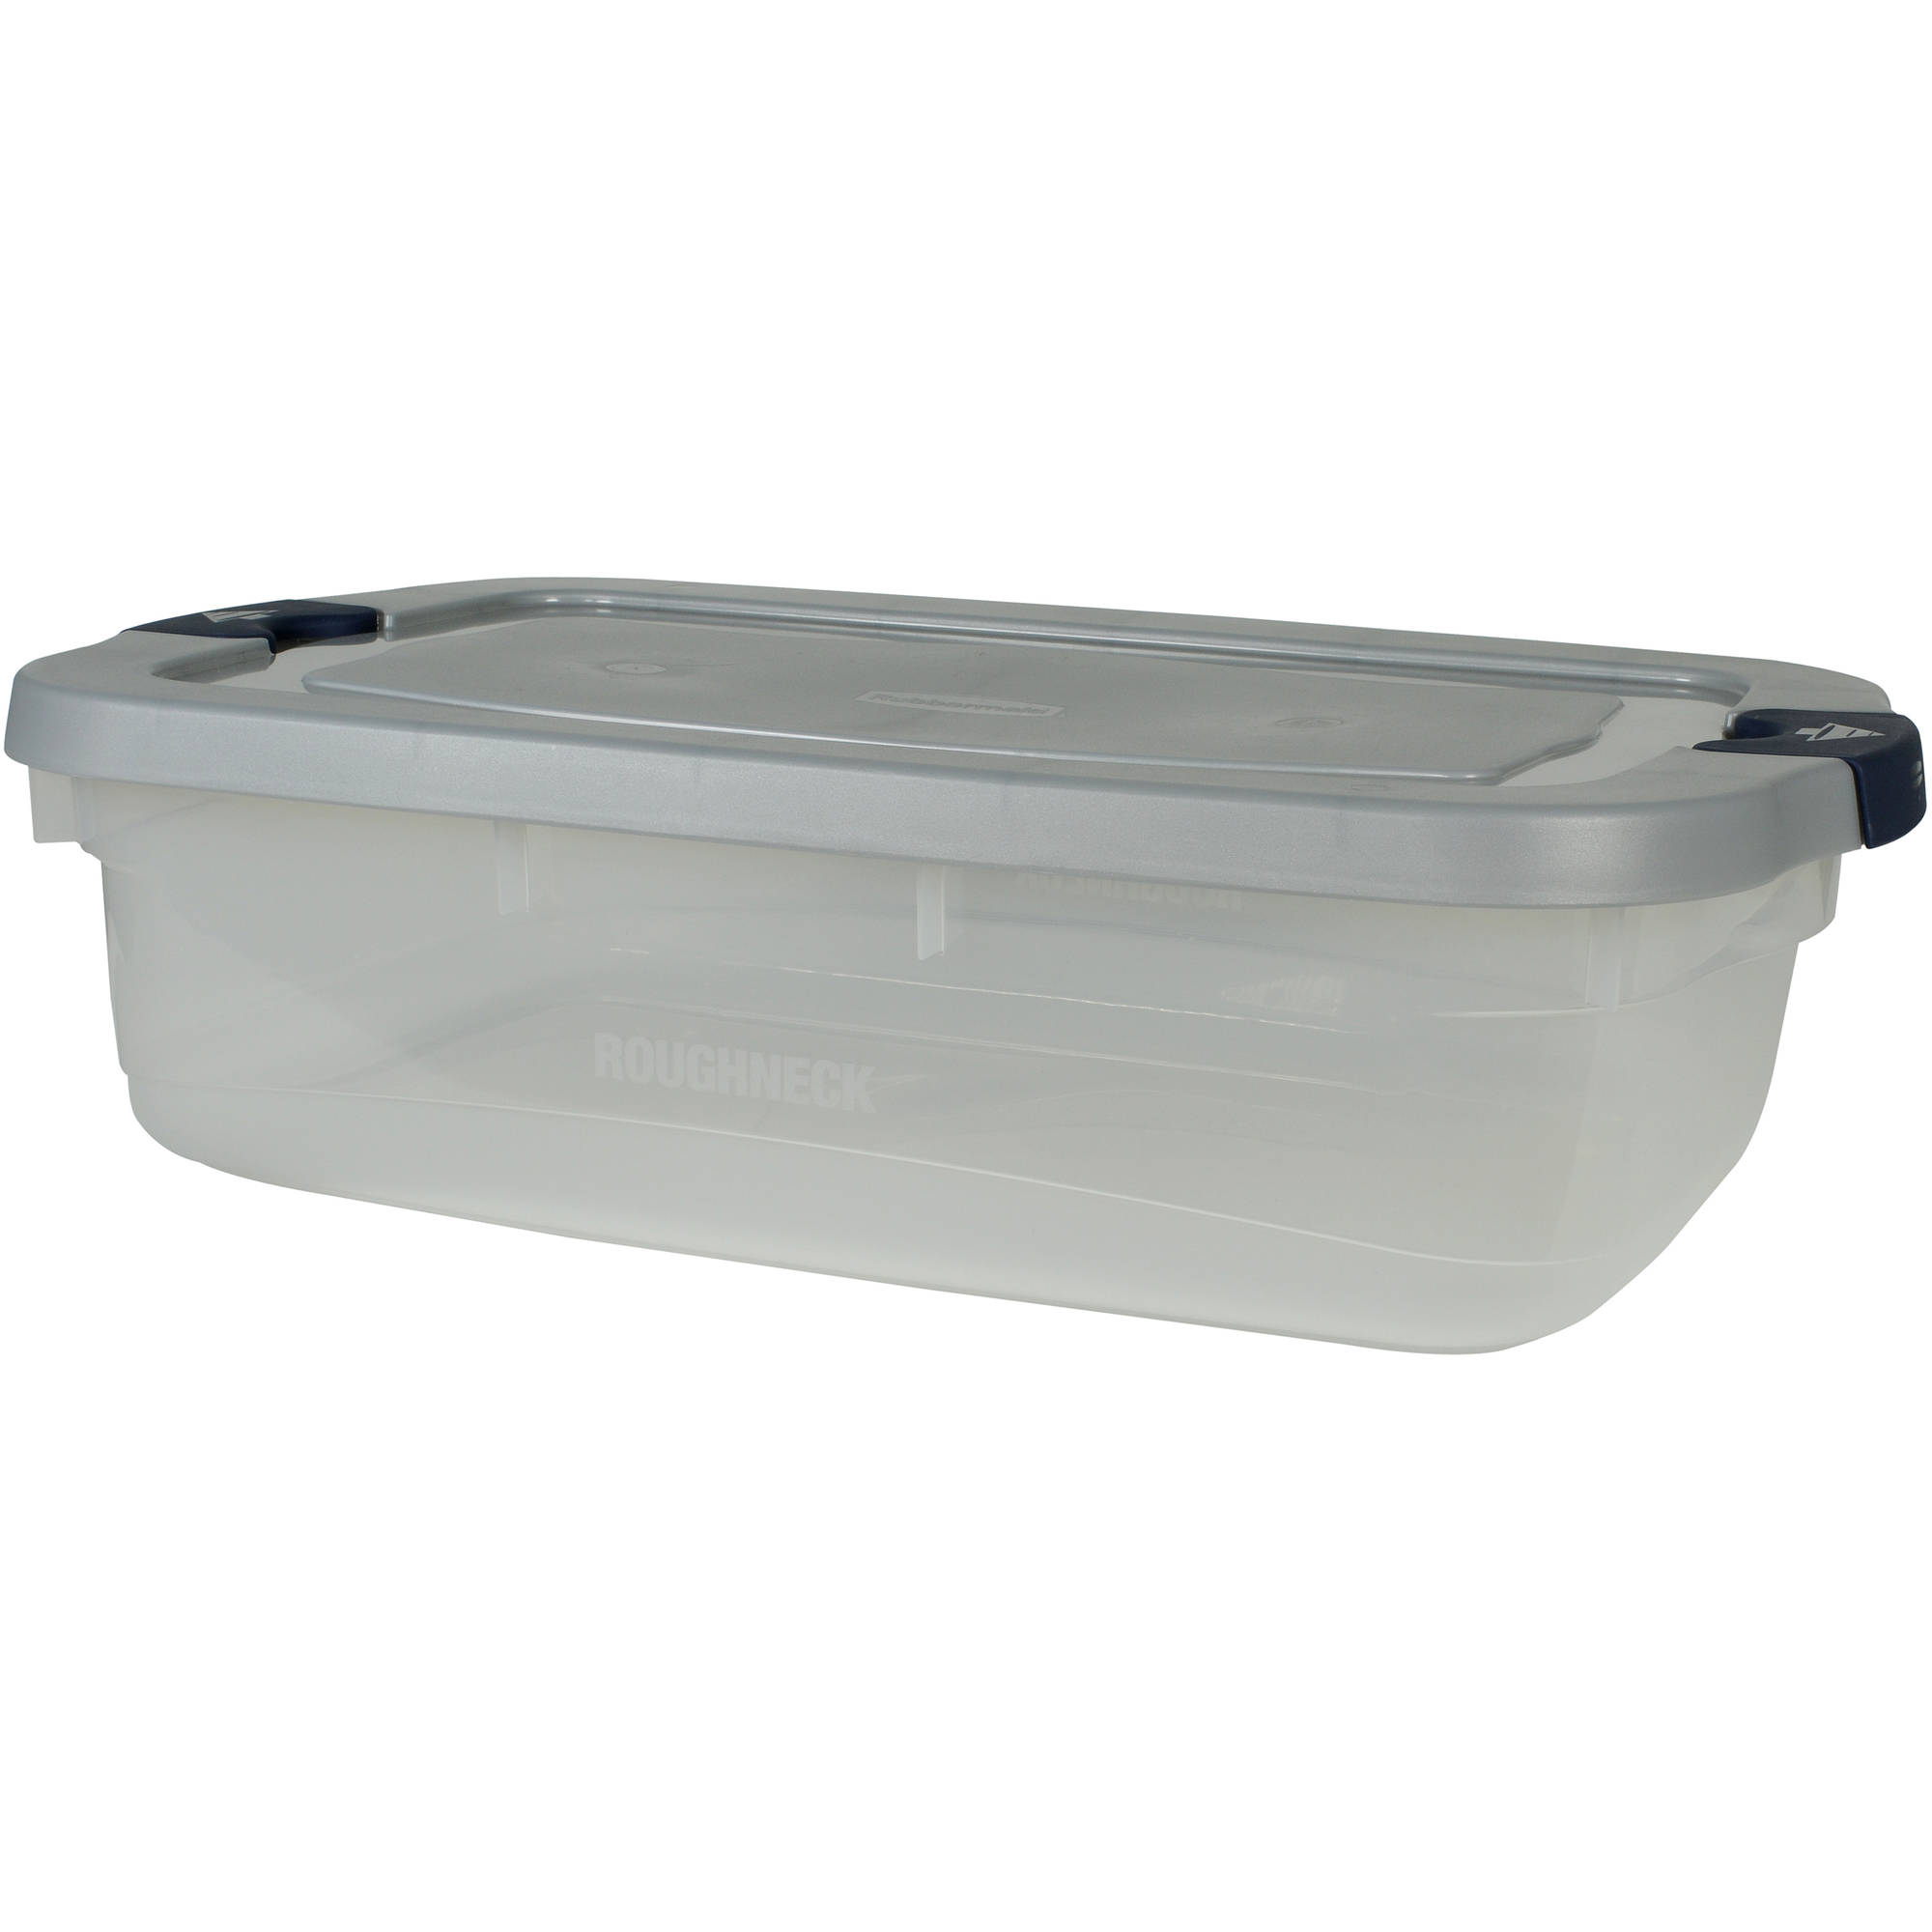 Rubbermaid Roughneck Clears Storage Tote Bins, 31 Qt (7.75 Gal), Clear With  Gray Lid, Set Of 6   Walmart.com